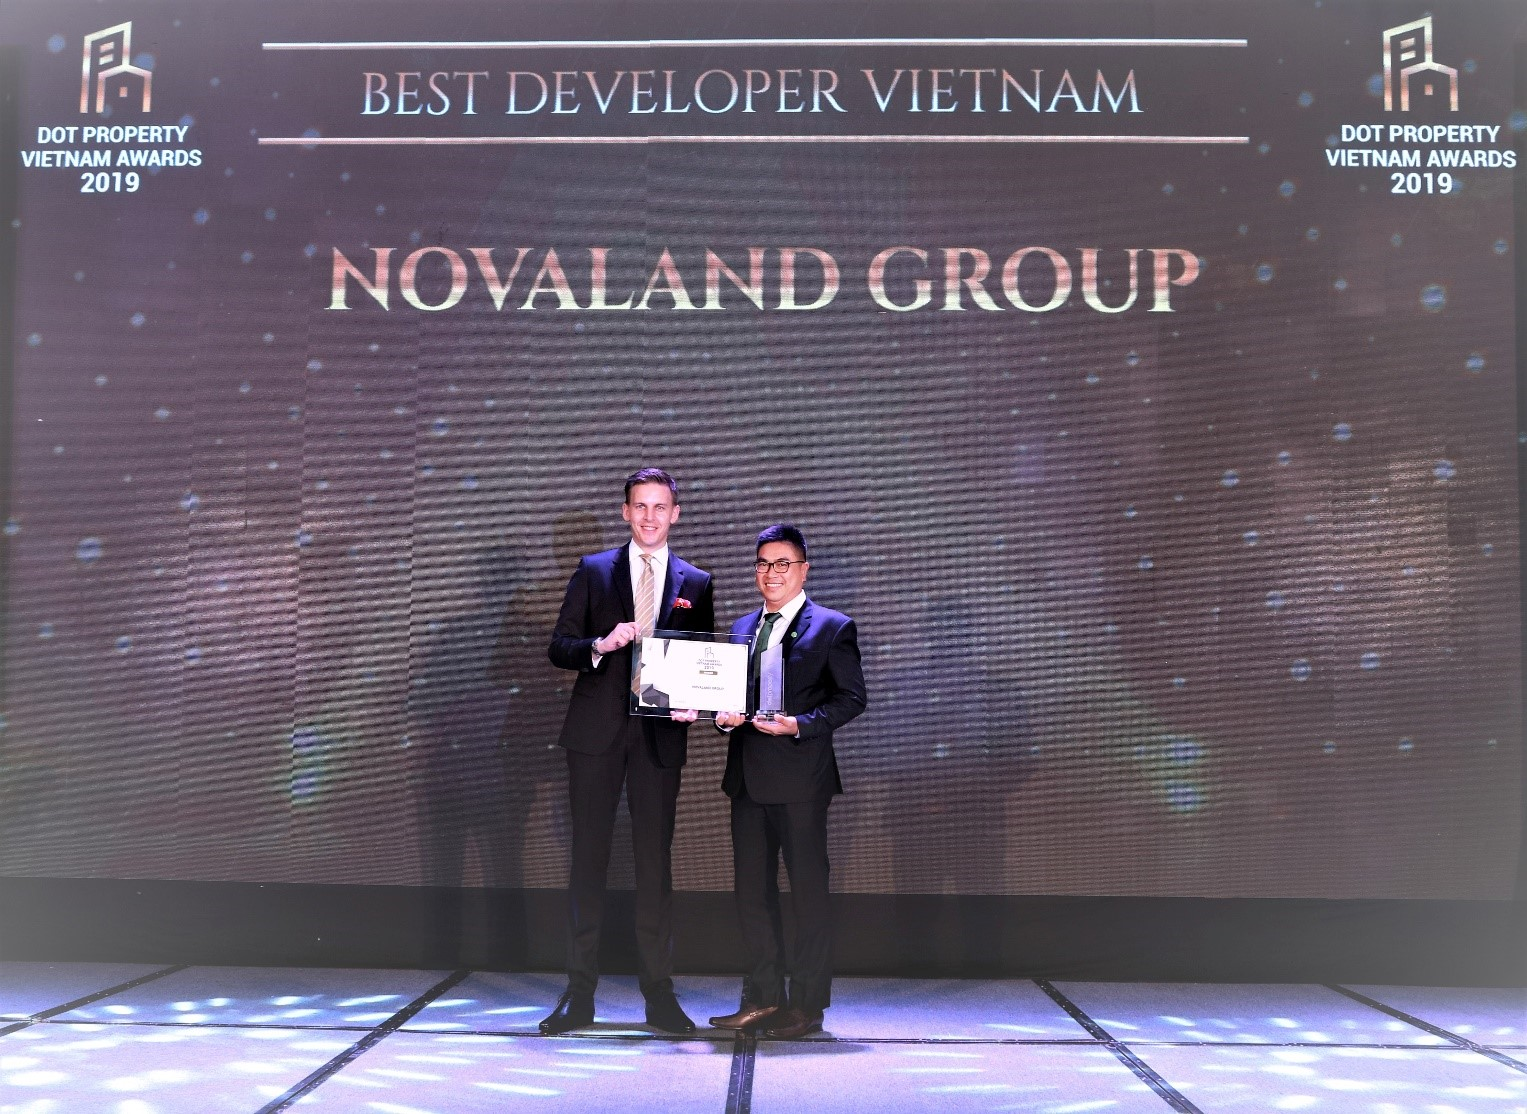 Novaland Group đạt giải Best Developer Vietnam tại Dot Property Awards 2019